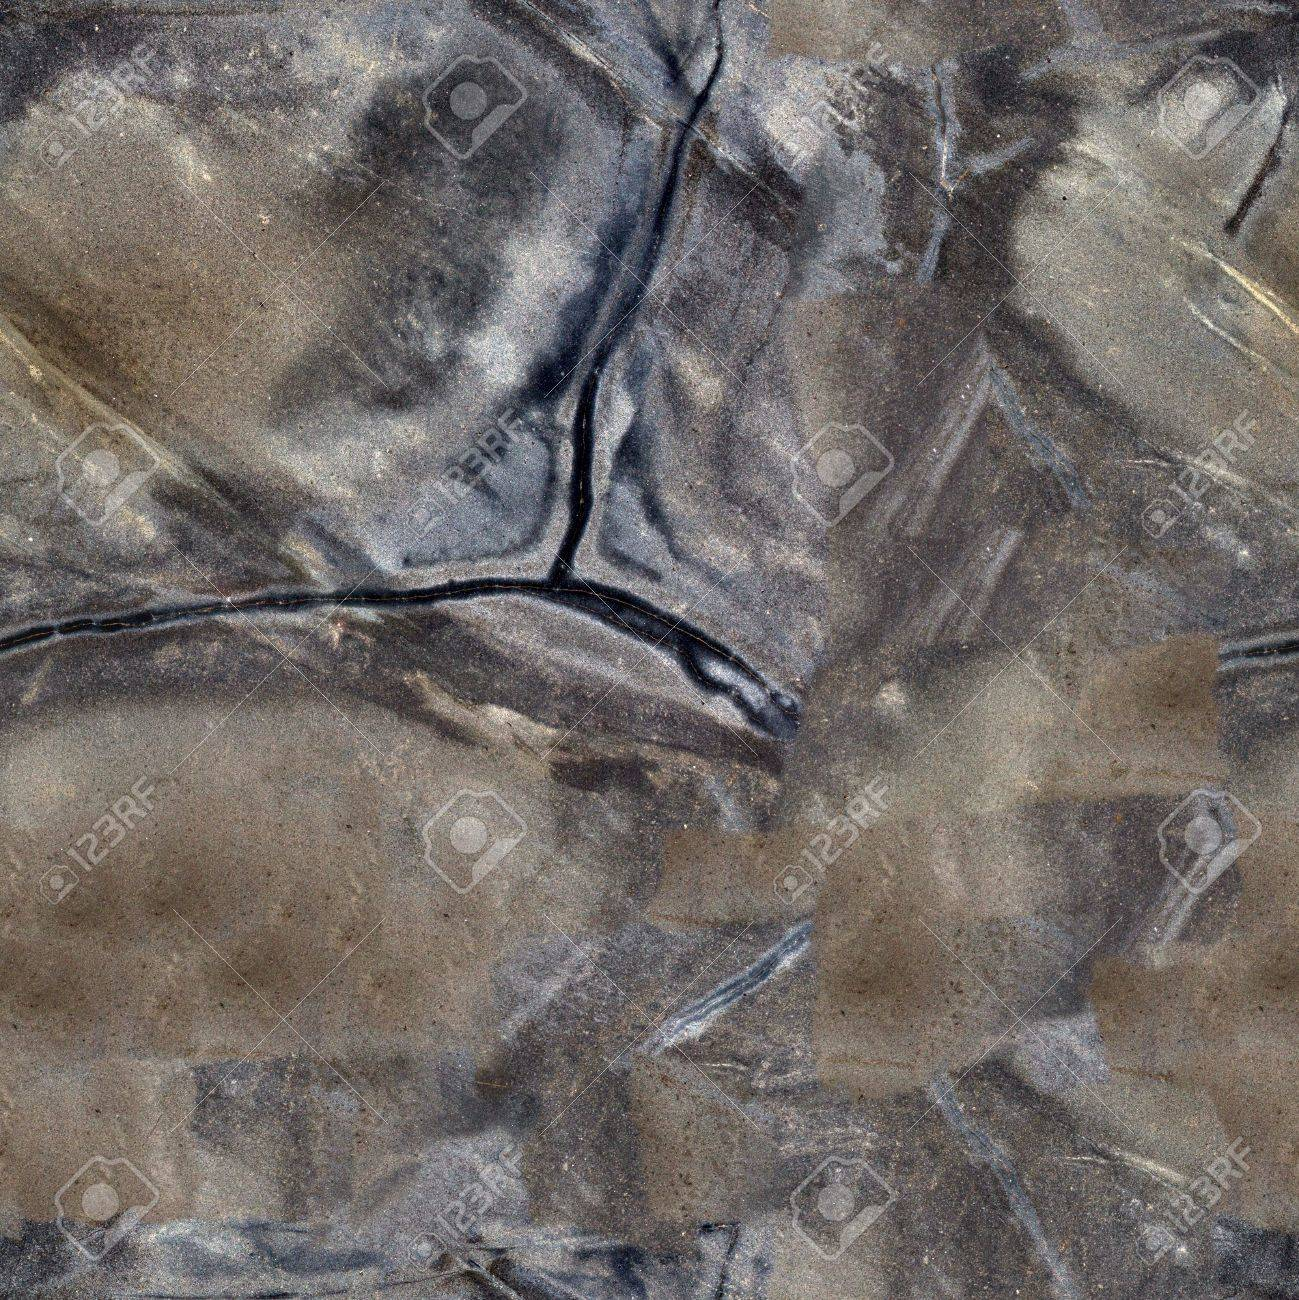 Quartzite tile flooring image collections tile flooring design ideas luxury quartzite tile flooring seamless square background tile luxury quartzite tile flooring seamless square background tile dailygadgetfo Choice Image